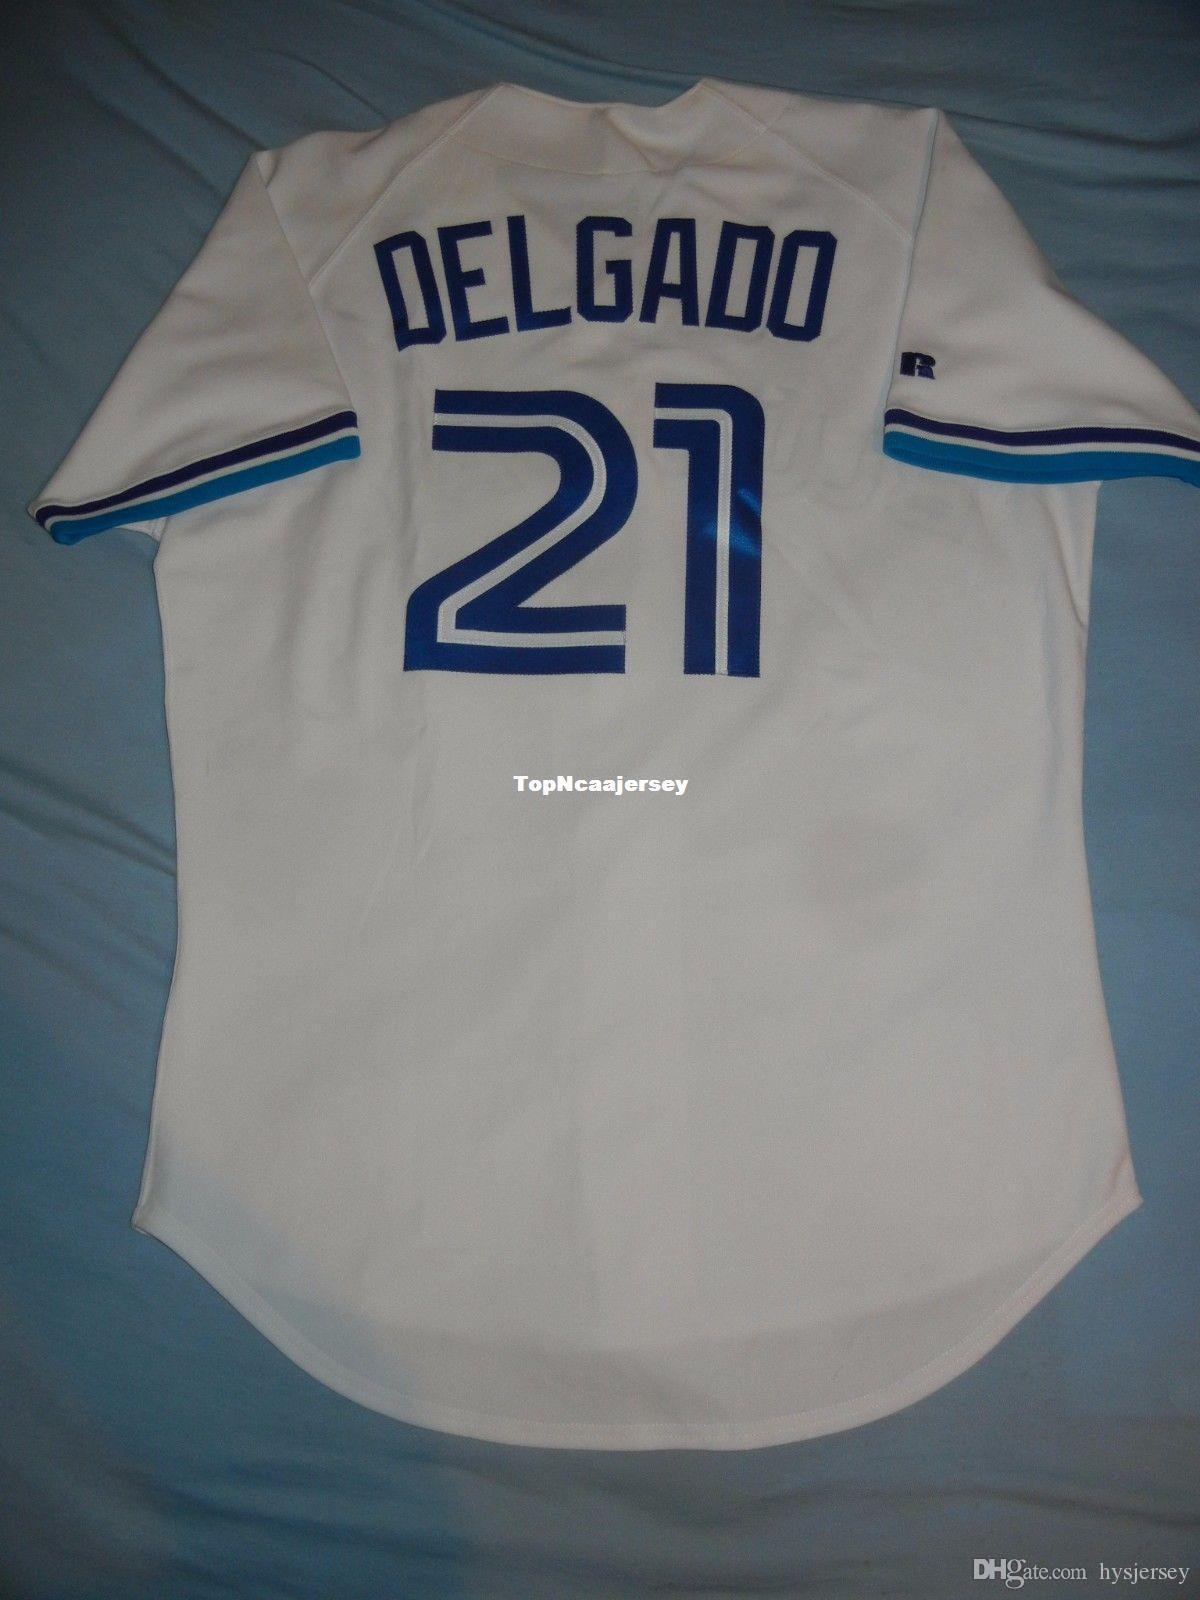 142f8df78 2019 Cheap Retro Top Russell Athletic #21 CARLOS DELGADO Toronto Rookie  Jersey 44 96 Mens Stitched Baseball Jerseys From Hysjersey, $19.19 |  DHgate.Com